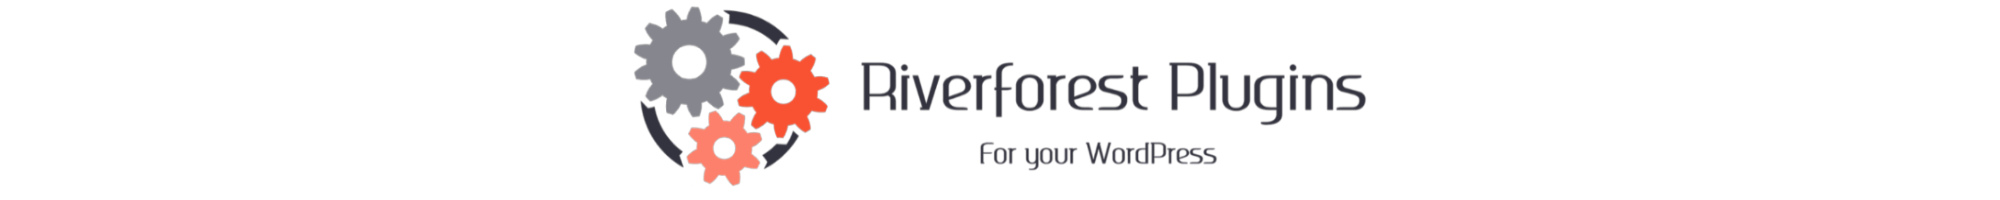 Riverforest Plugins